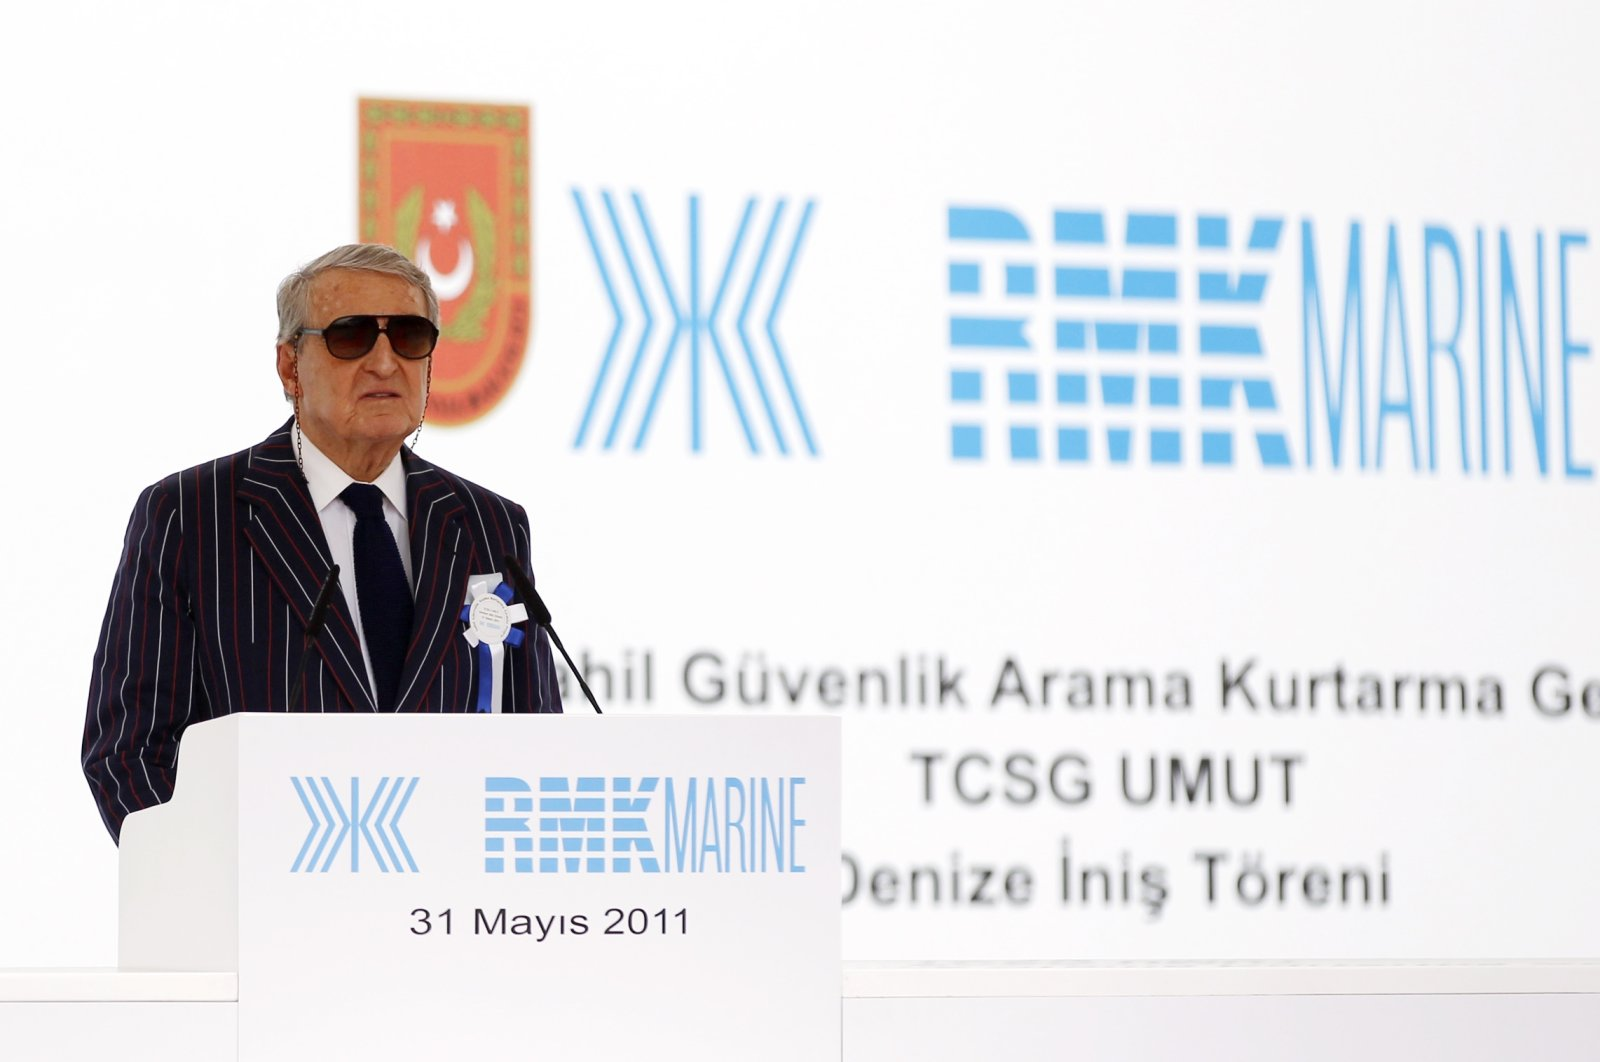 Koç Holding Honorary Chairman Rahmi Koç makes a speech during a launch ceremony for the newly built TCSG Umut, one of the four newly built search and rescue ships for the Turkish Coast Guard, at the RMK Marine shipyard in Istanbul, May 31, 2011. (Reuters Photo)